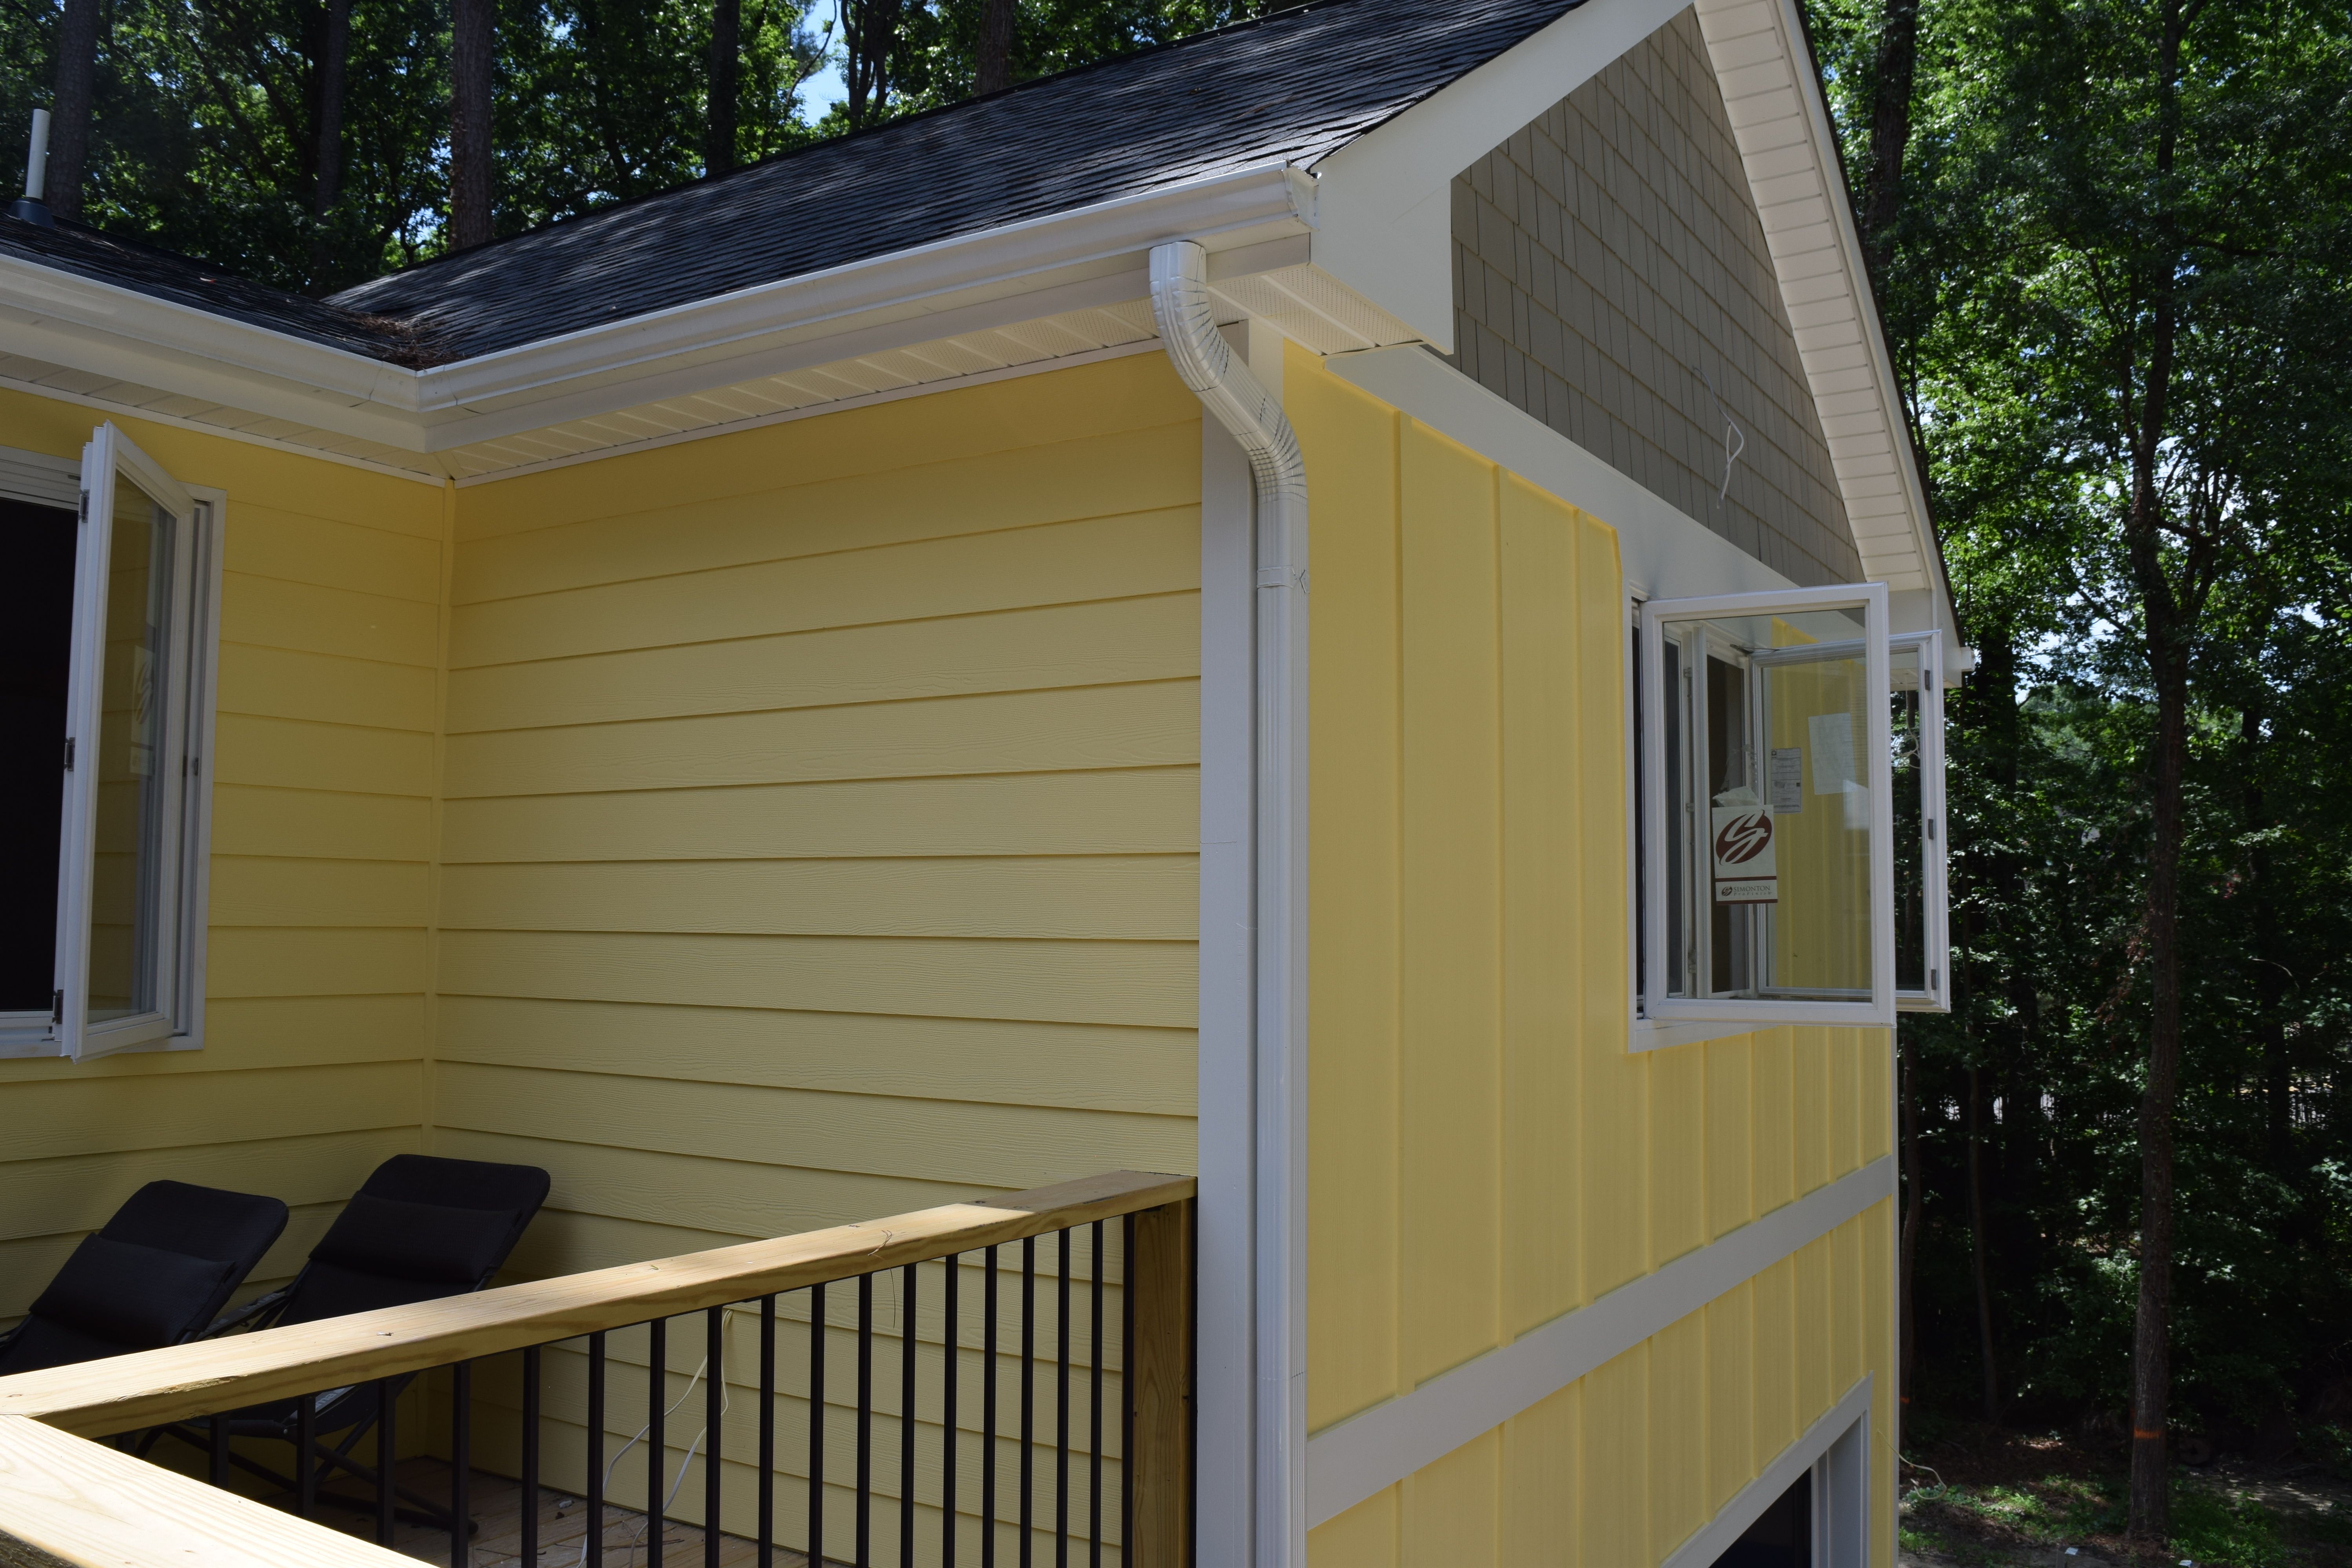 We Replaced The Existing Siding On This Home In Cary Nc With James Hardie Cedarmill Select Lap Siding 4 James Hardie Window Siding Window Trim Porch Ceiling